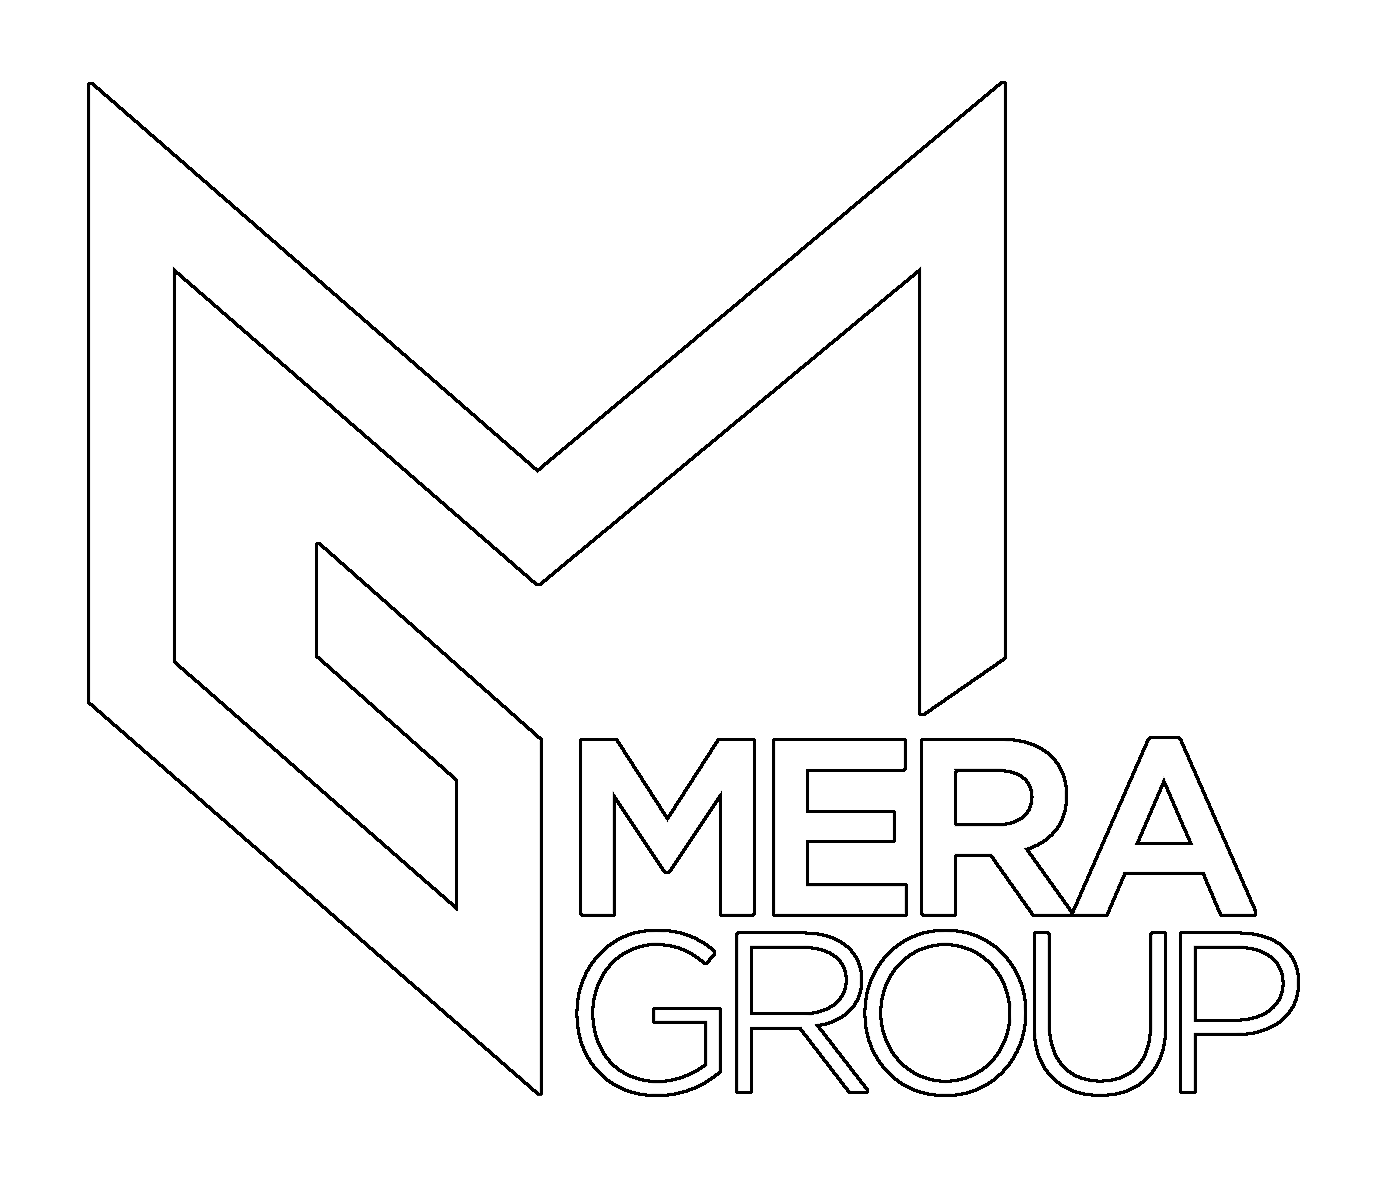 Mera Group - Digital Marketing & Creative